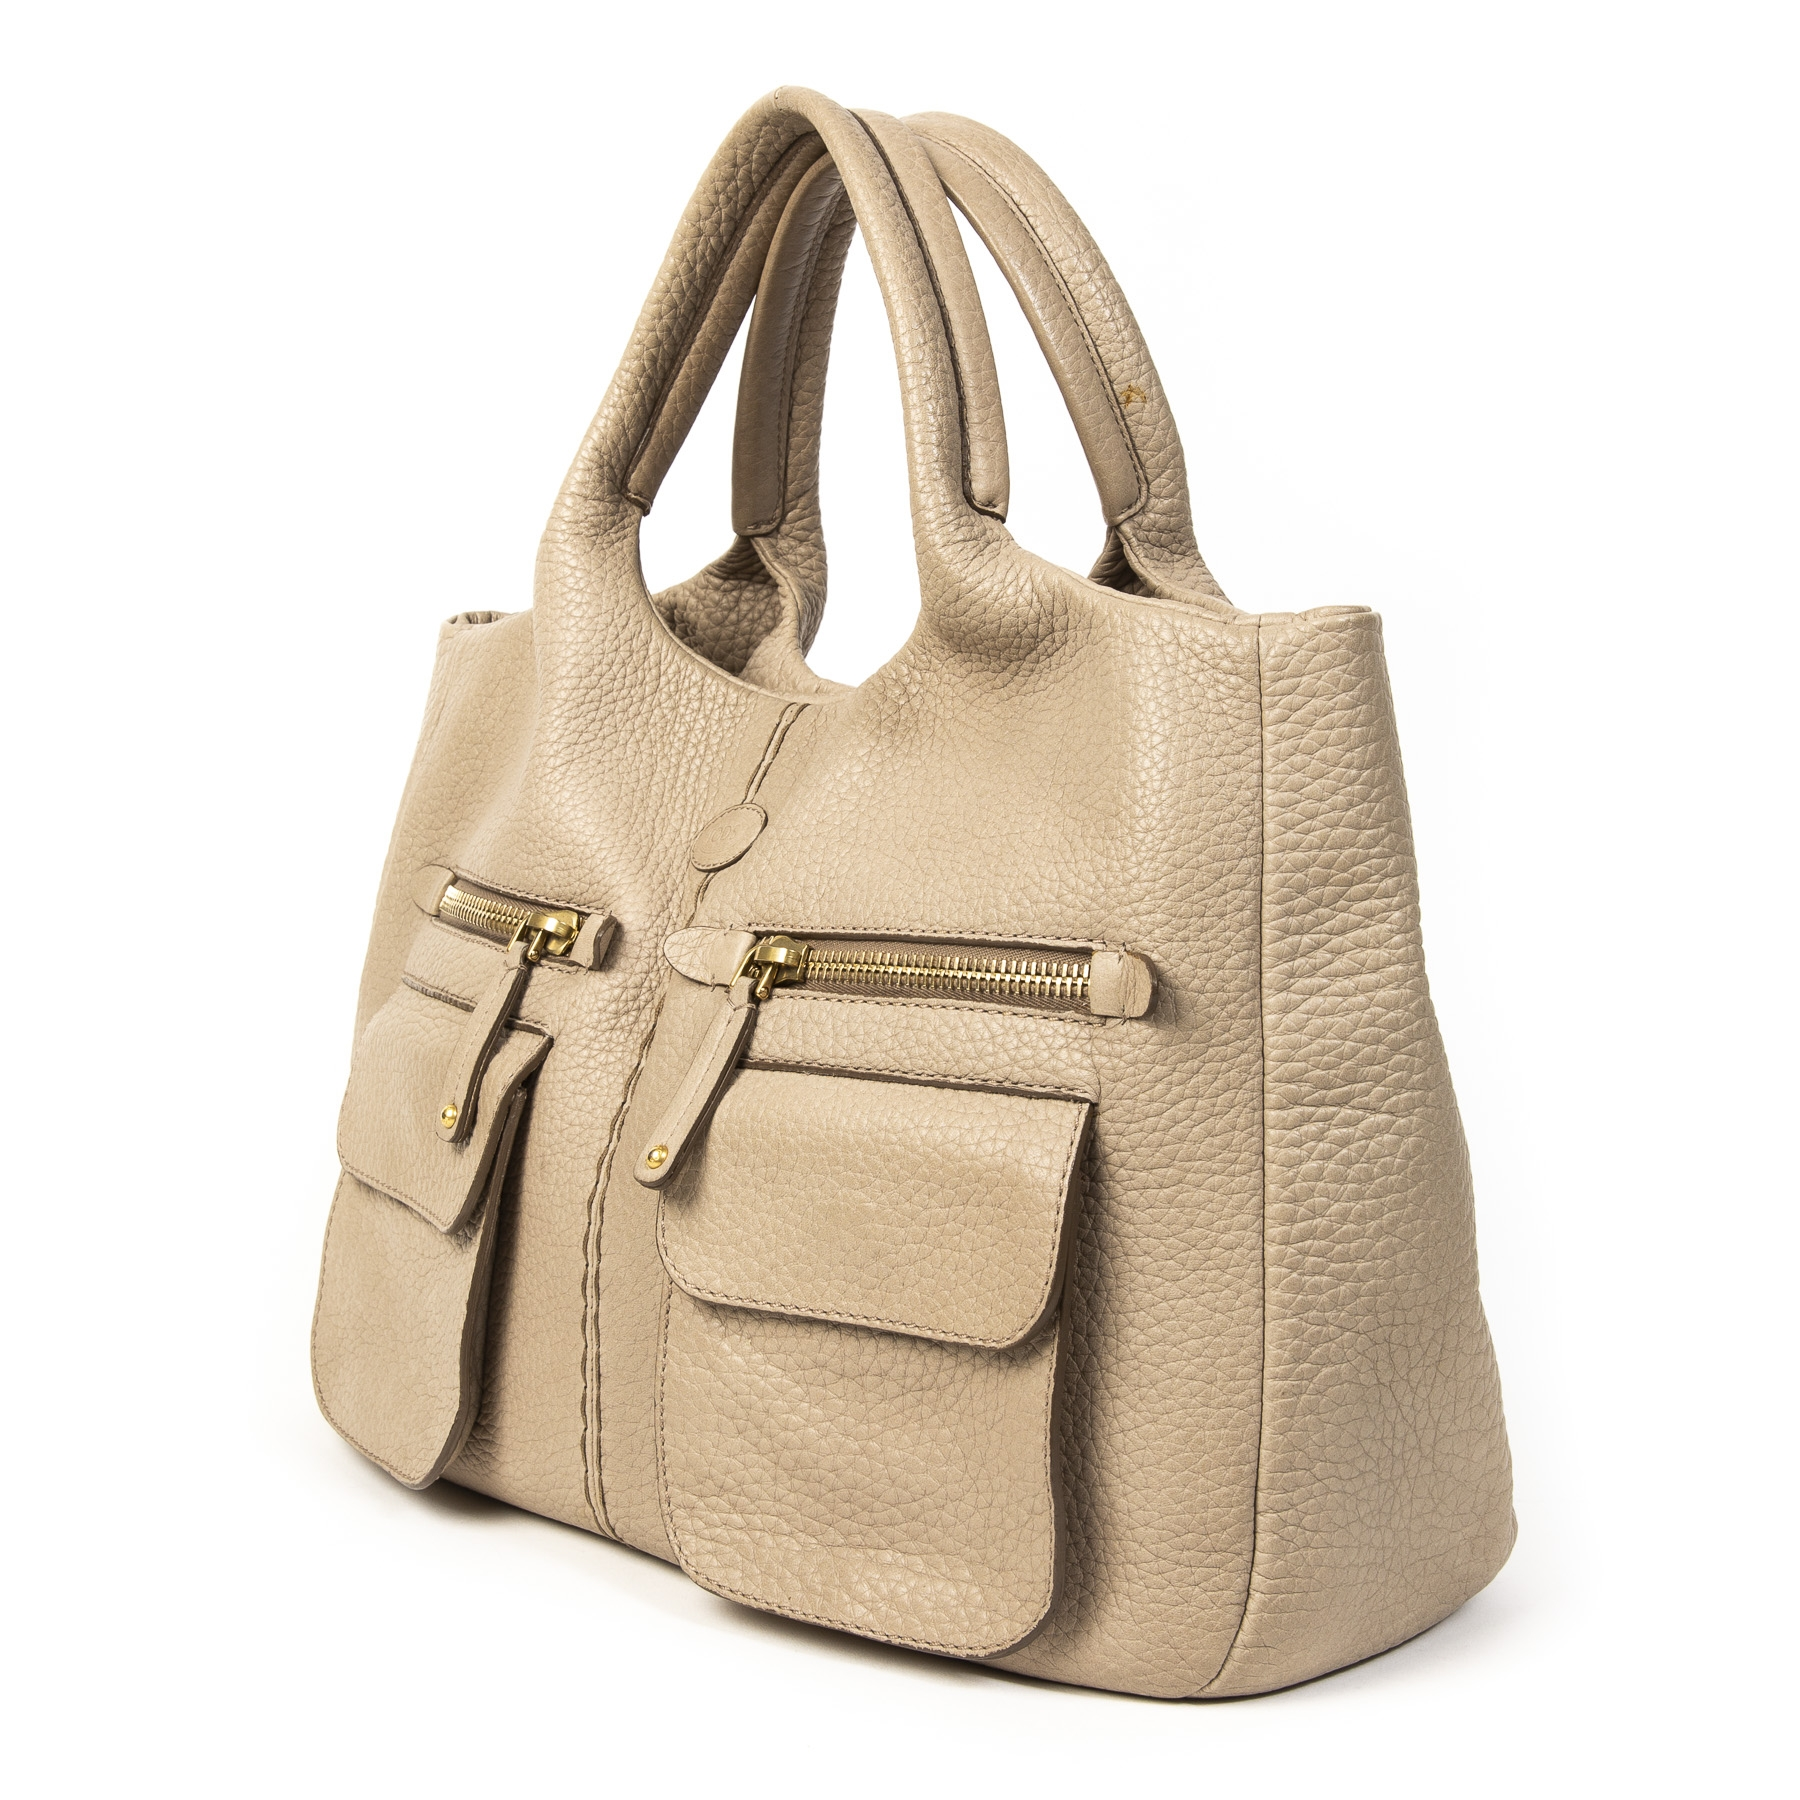 9afed8c8b91 ... veilige Tods Taupe Top Handle Bag. Buy authentic secondhand TODS bags  at labellov antwerp, veilige